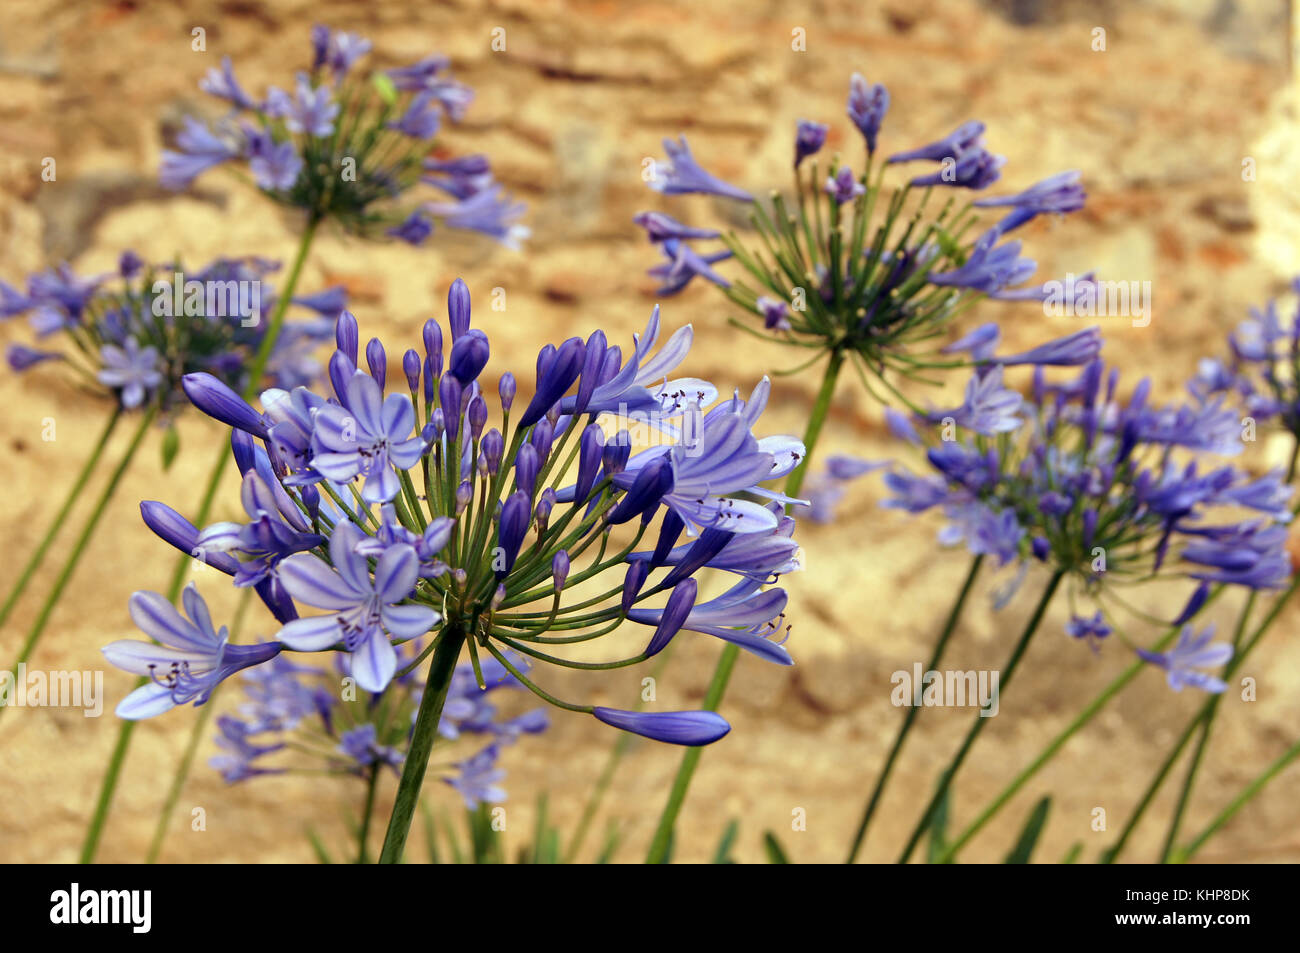 Blue flowers on the dry field in Guatemala - Stock Image